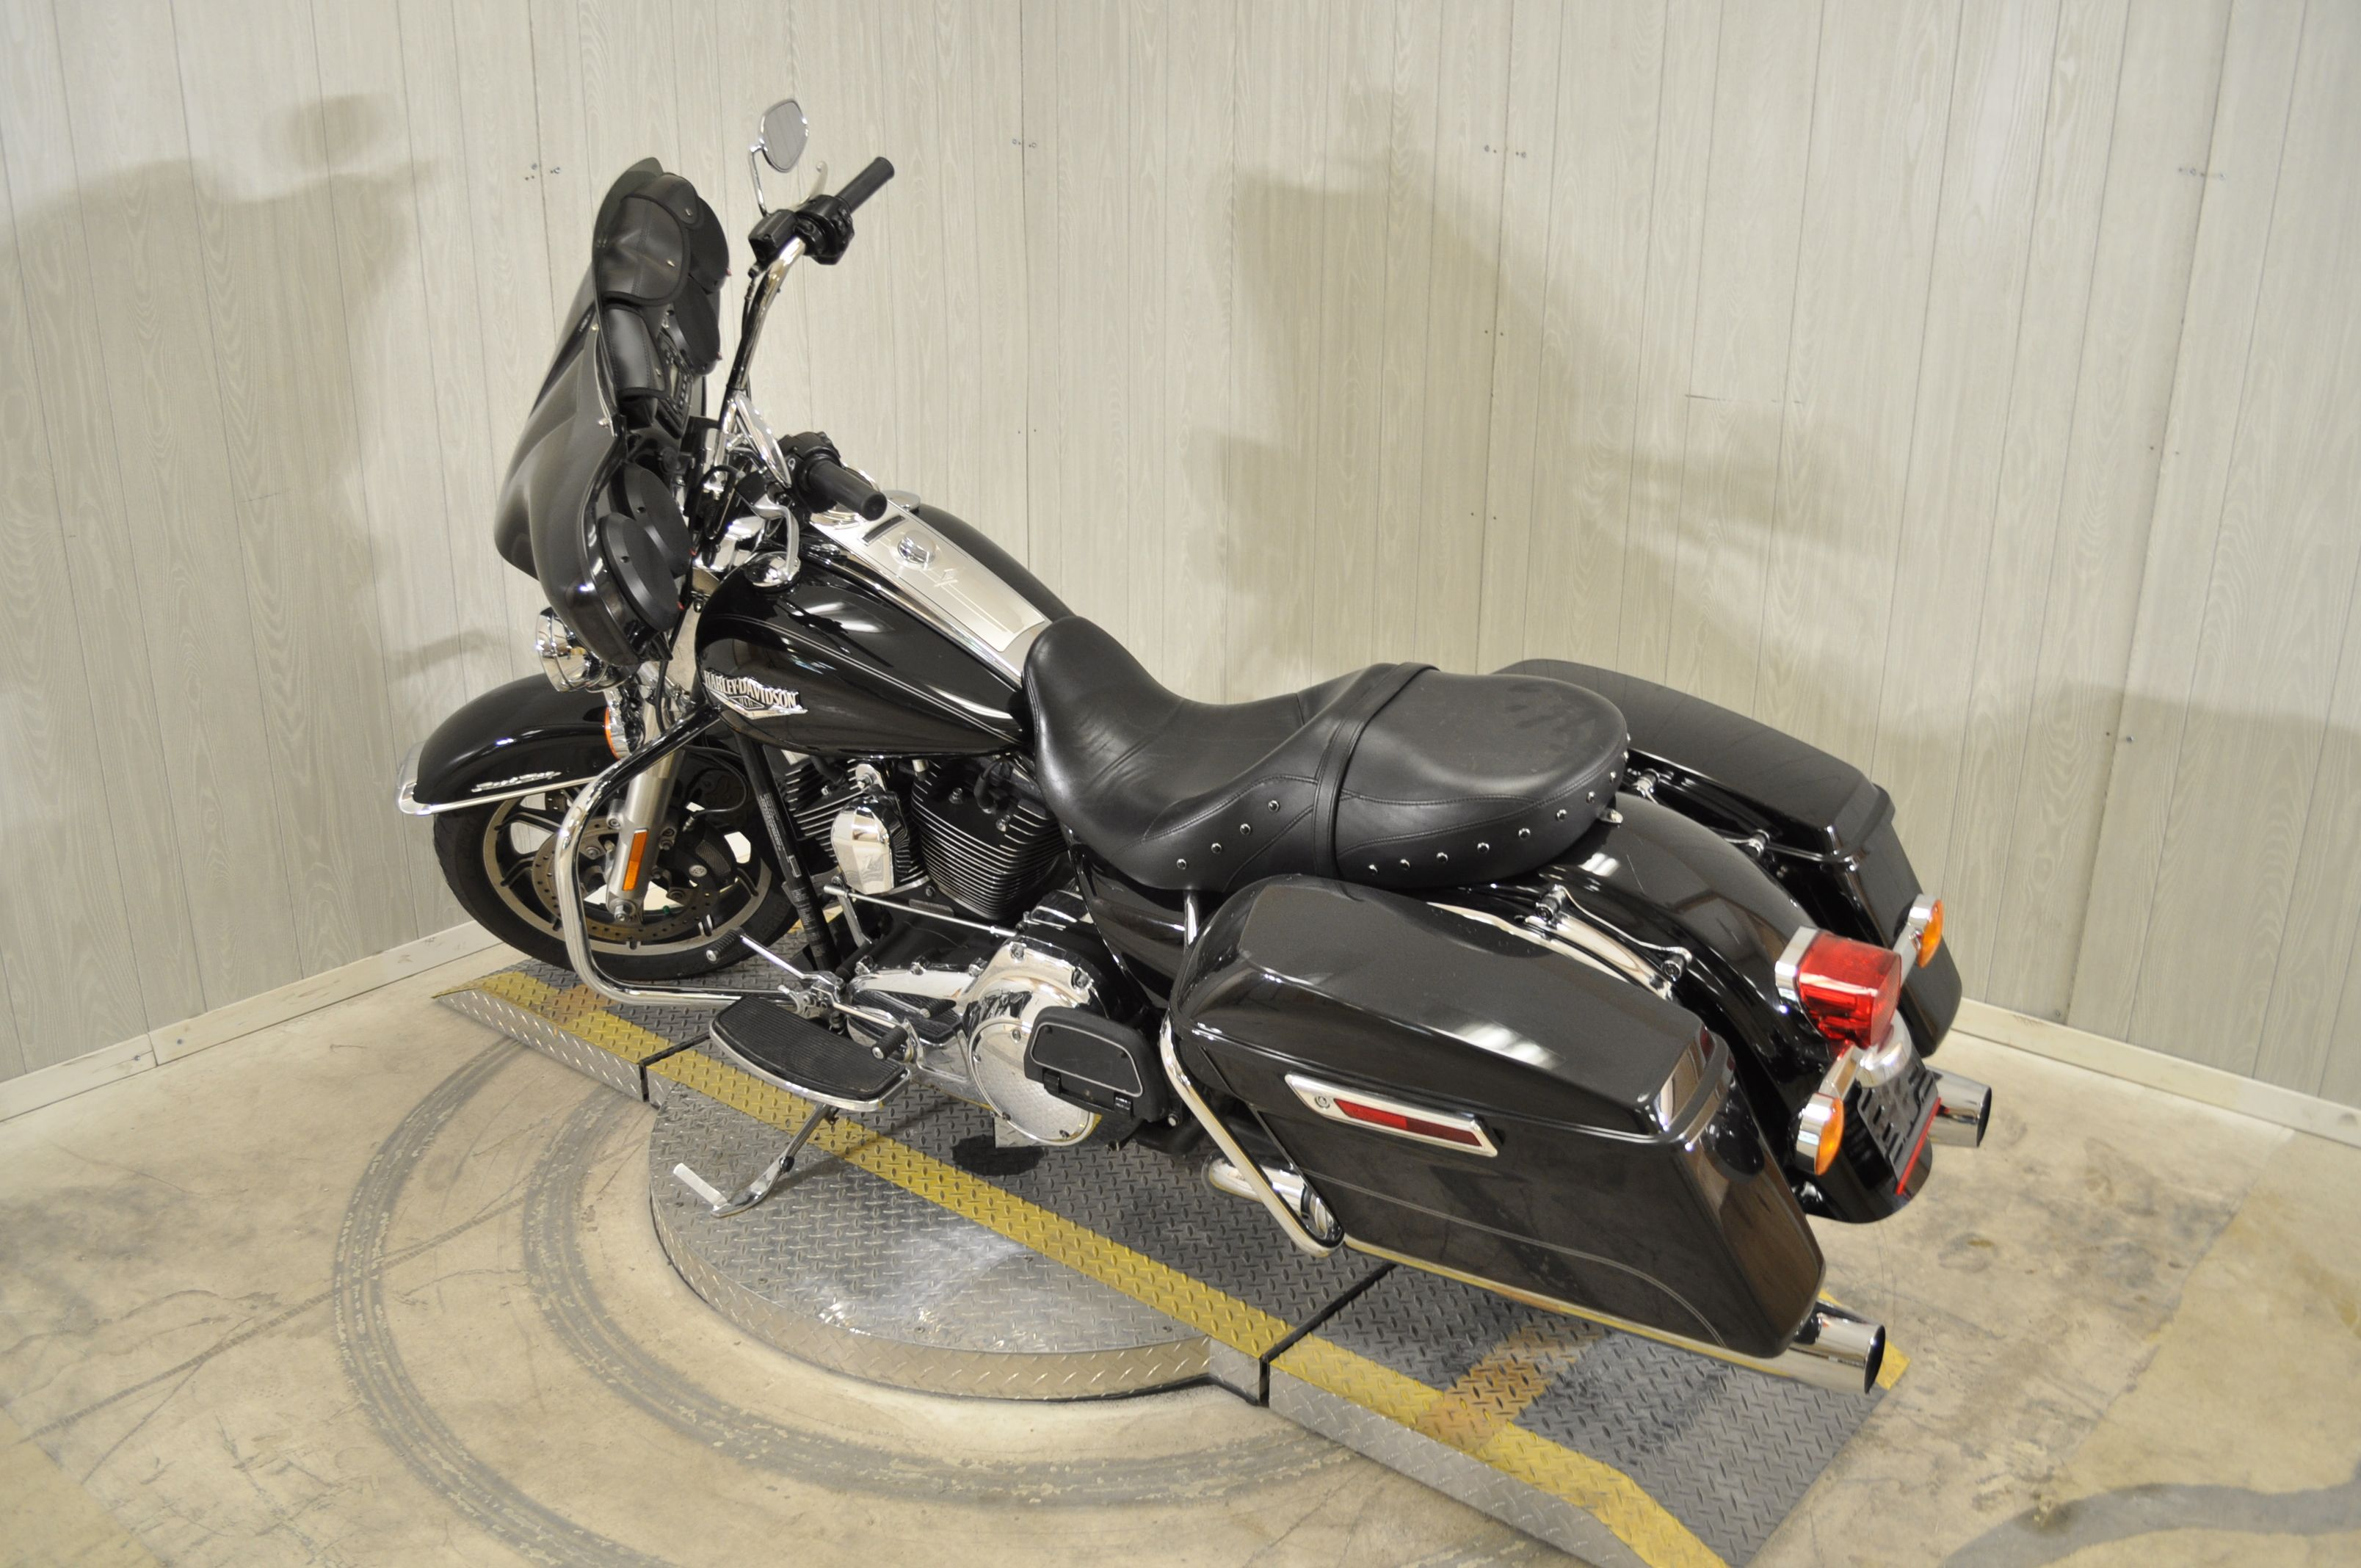 Pre-Owned 2015 Harley-Davidson Road King FLHR